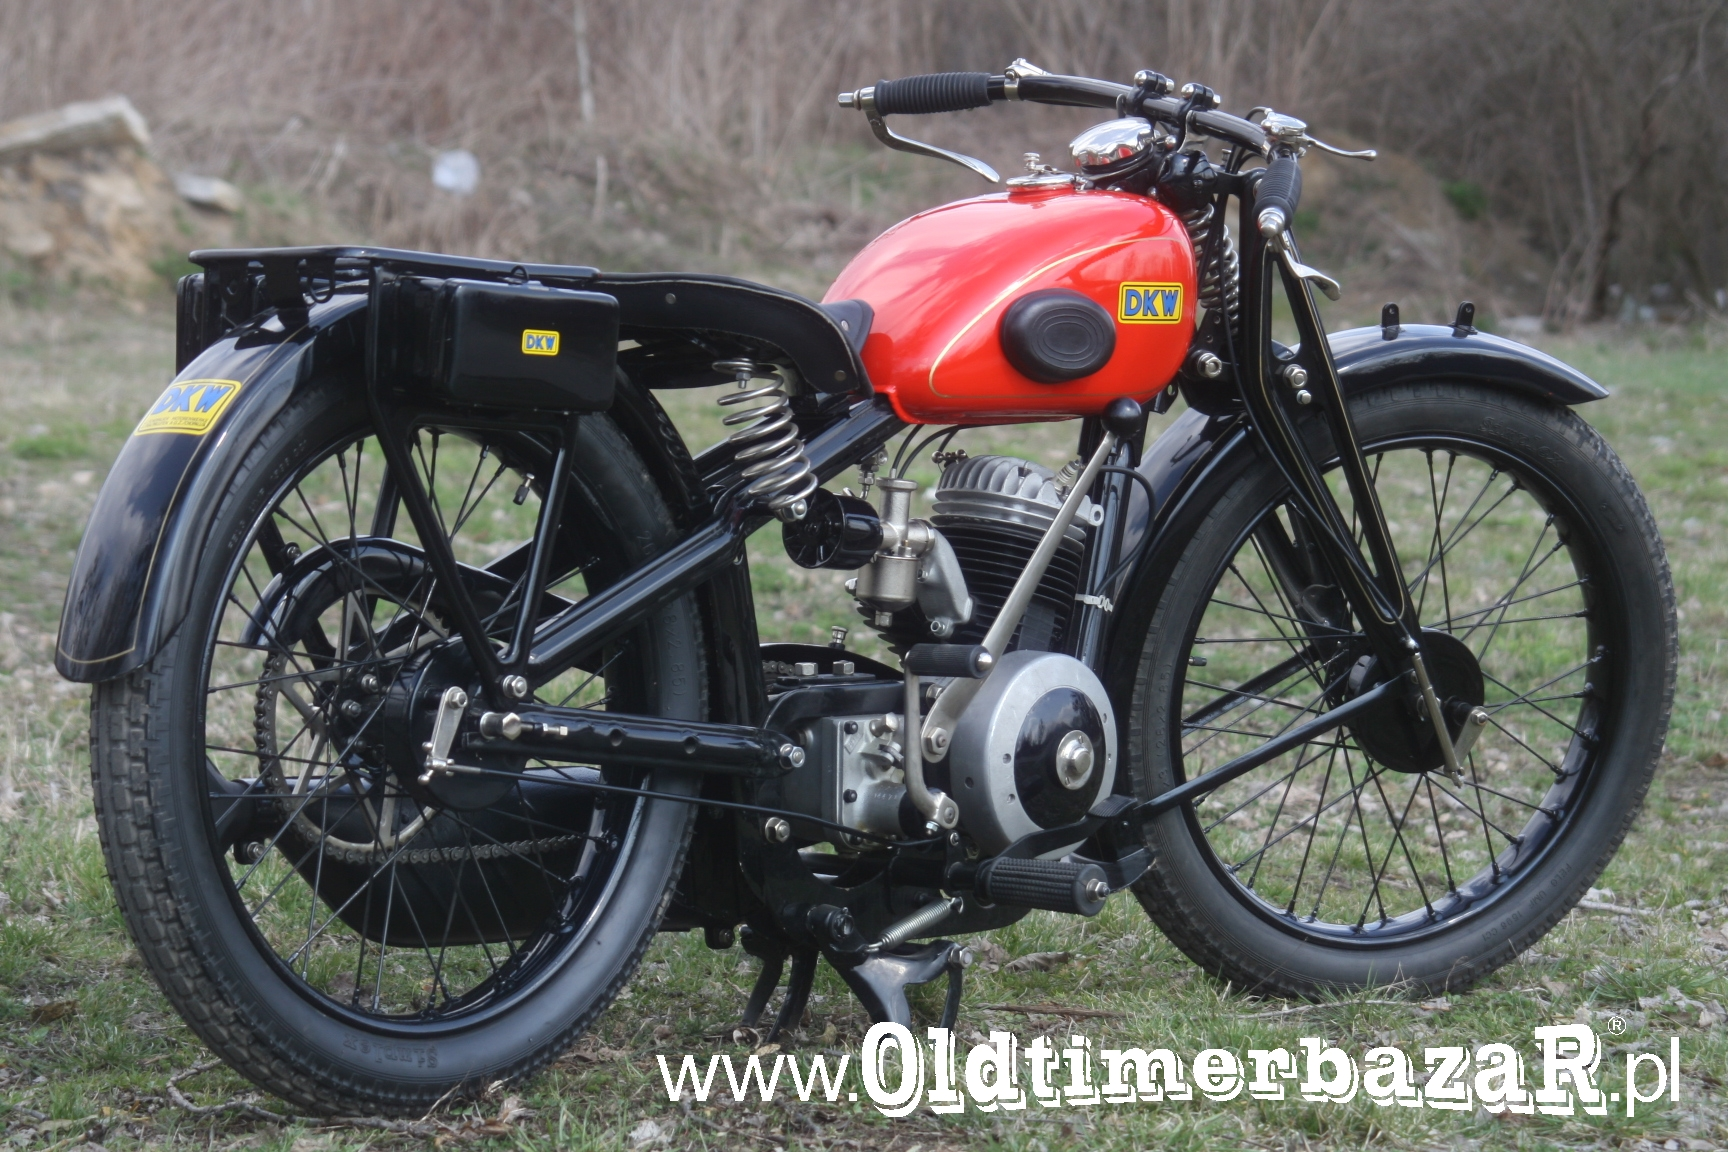 Dkw luxus photo - 4